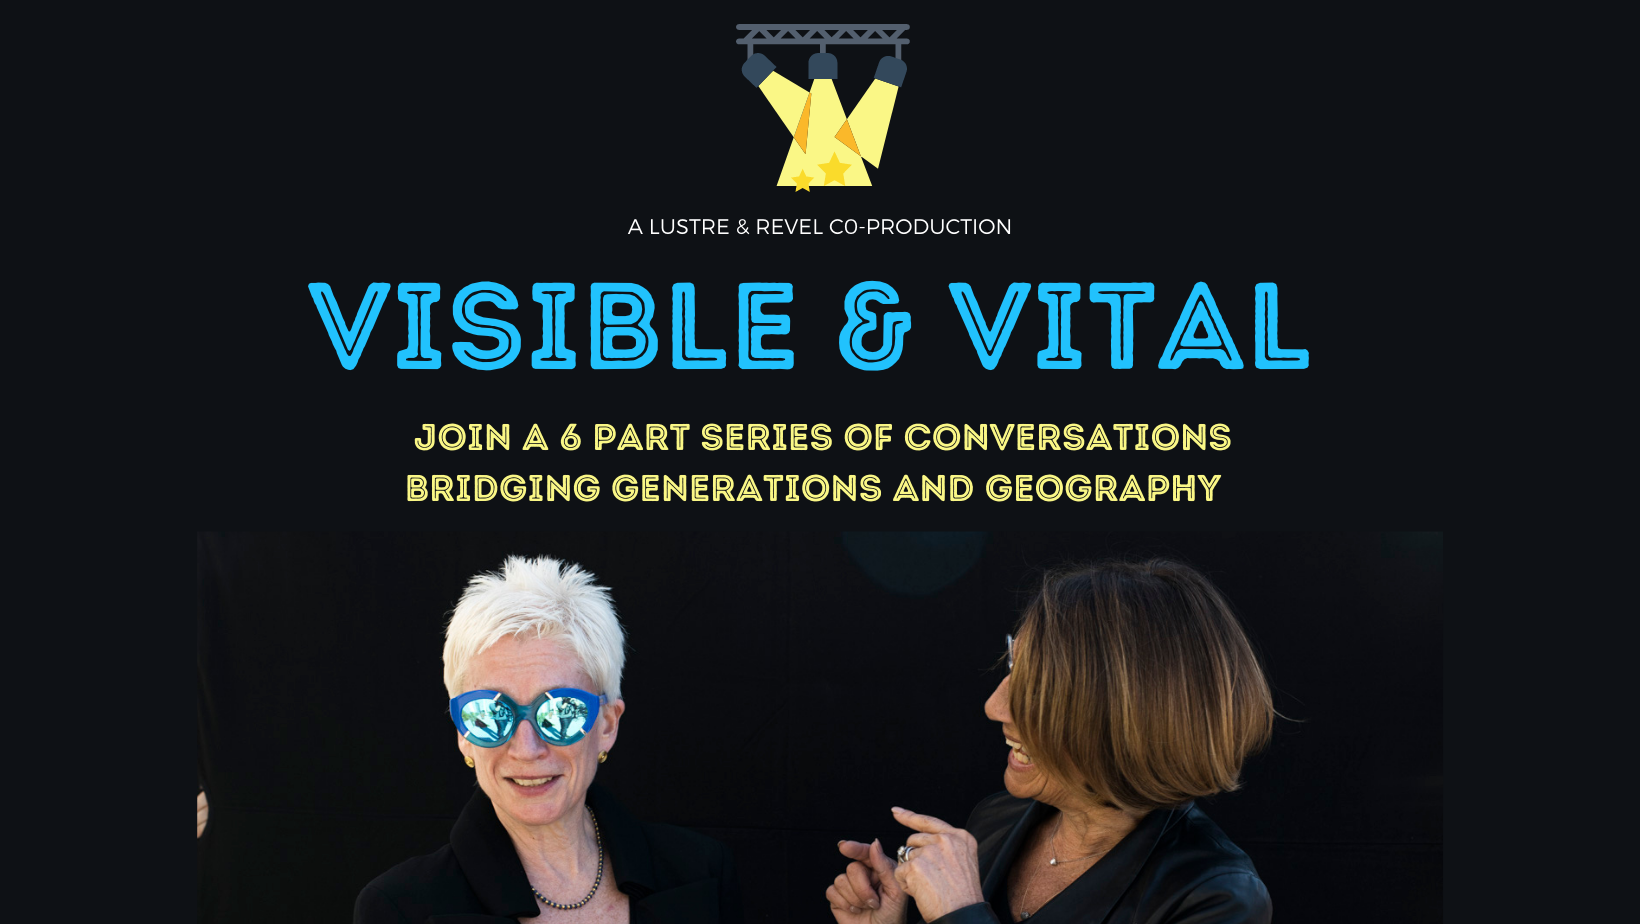 Visible & Vital: Intergenerational Female Founders Interview w/ Revel & Lustre